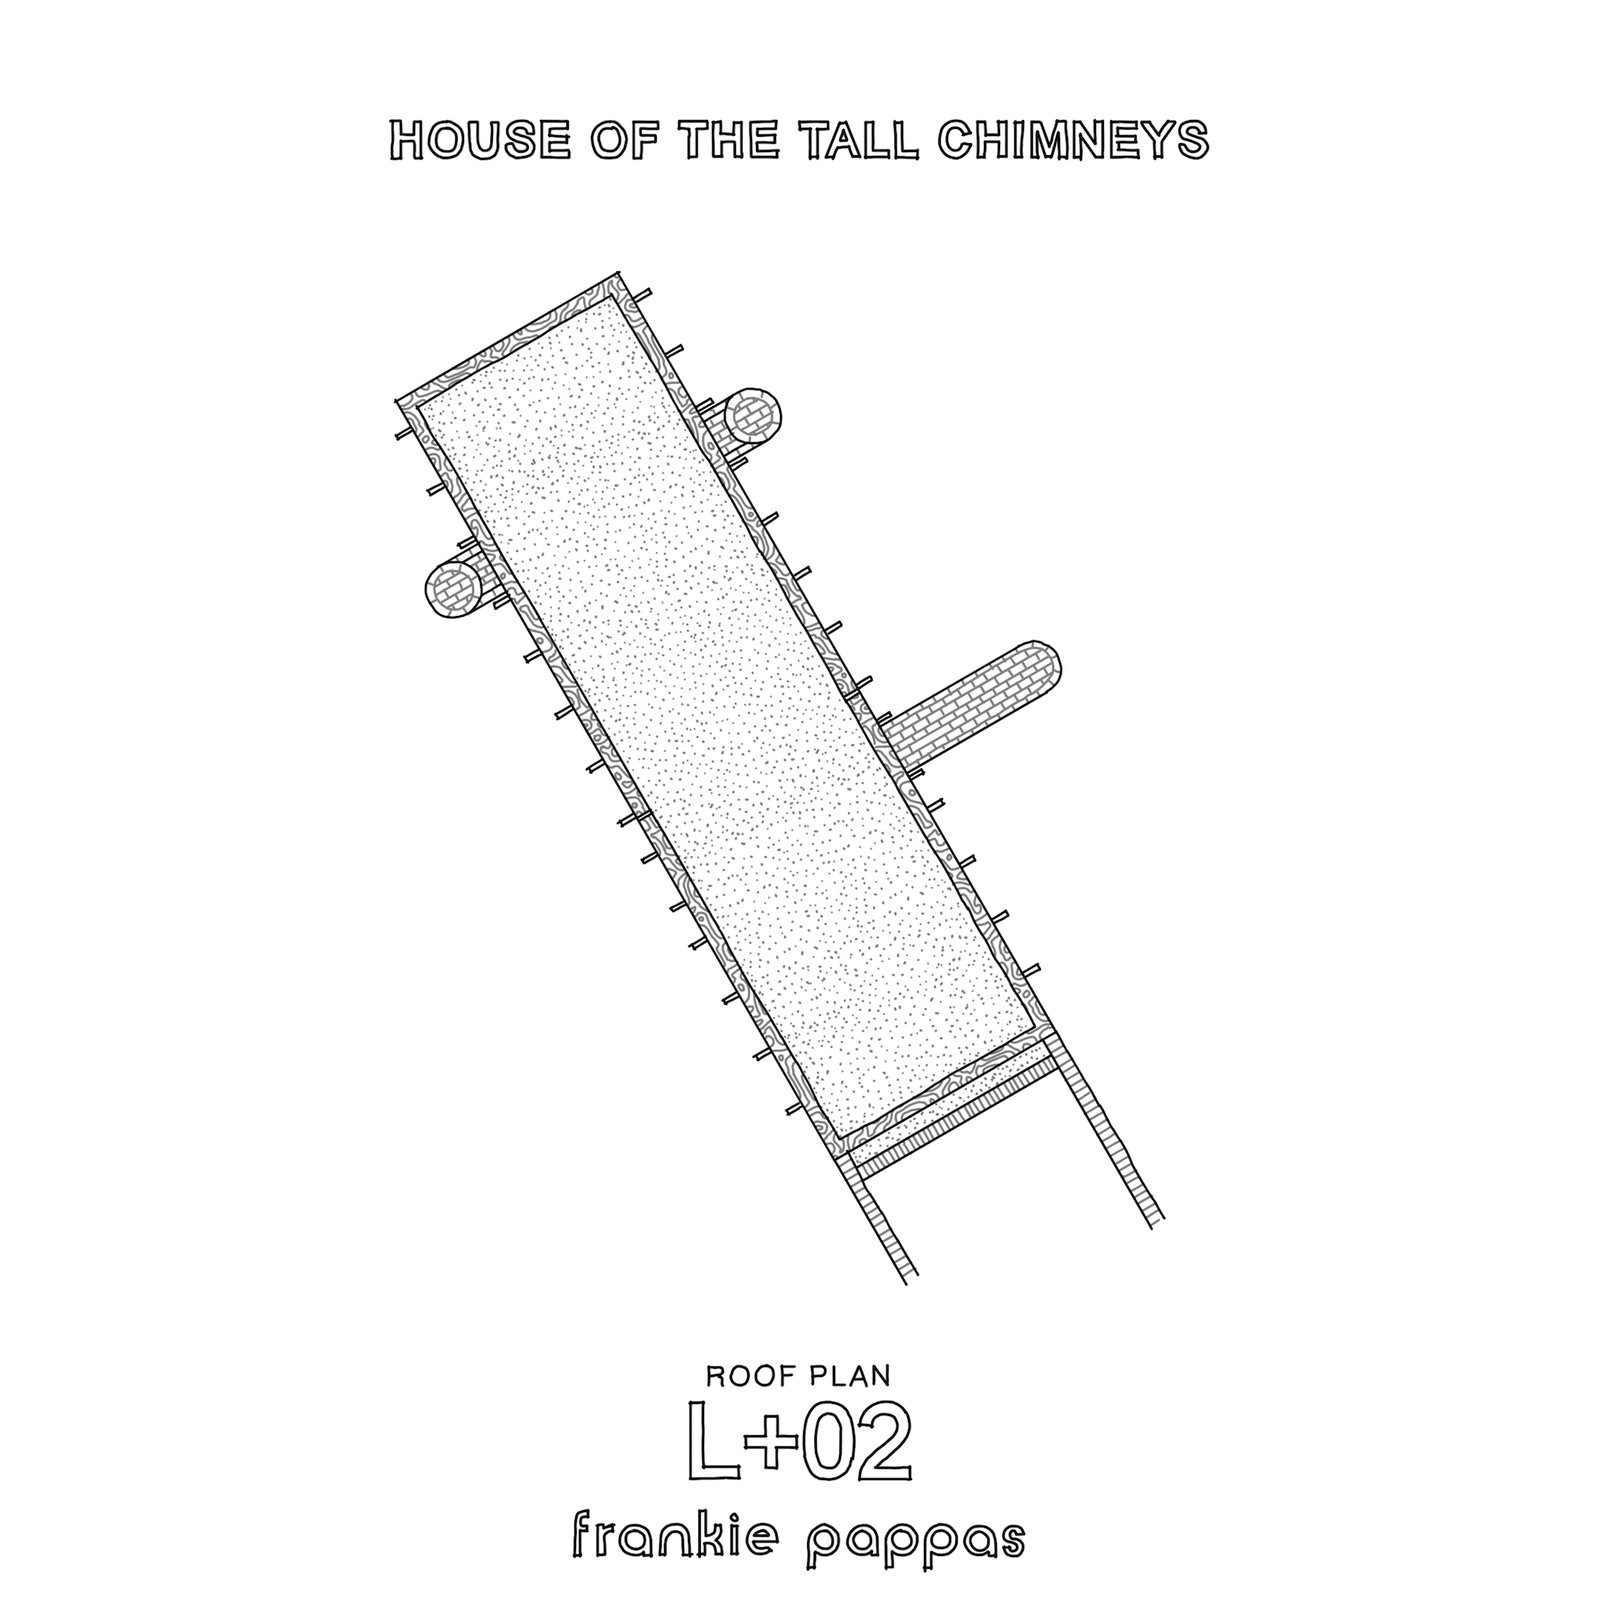 Roof plan of House of the Tall Chimneys by Frankie Pappas.